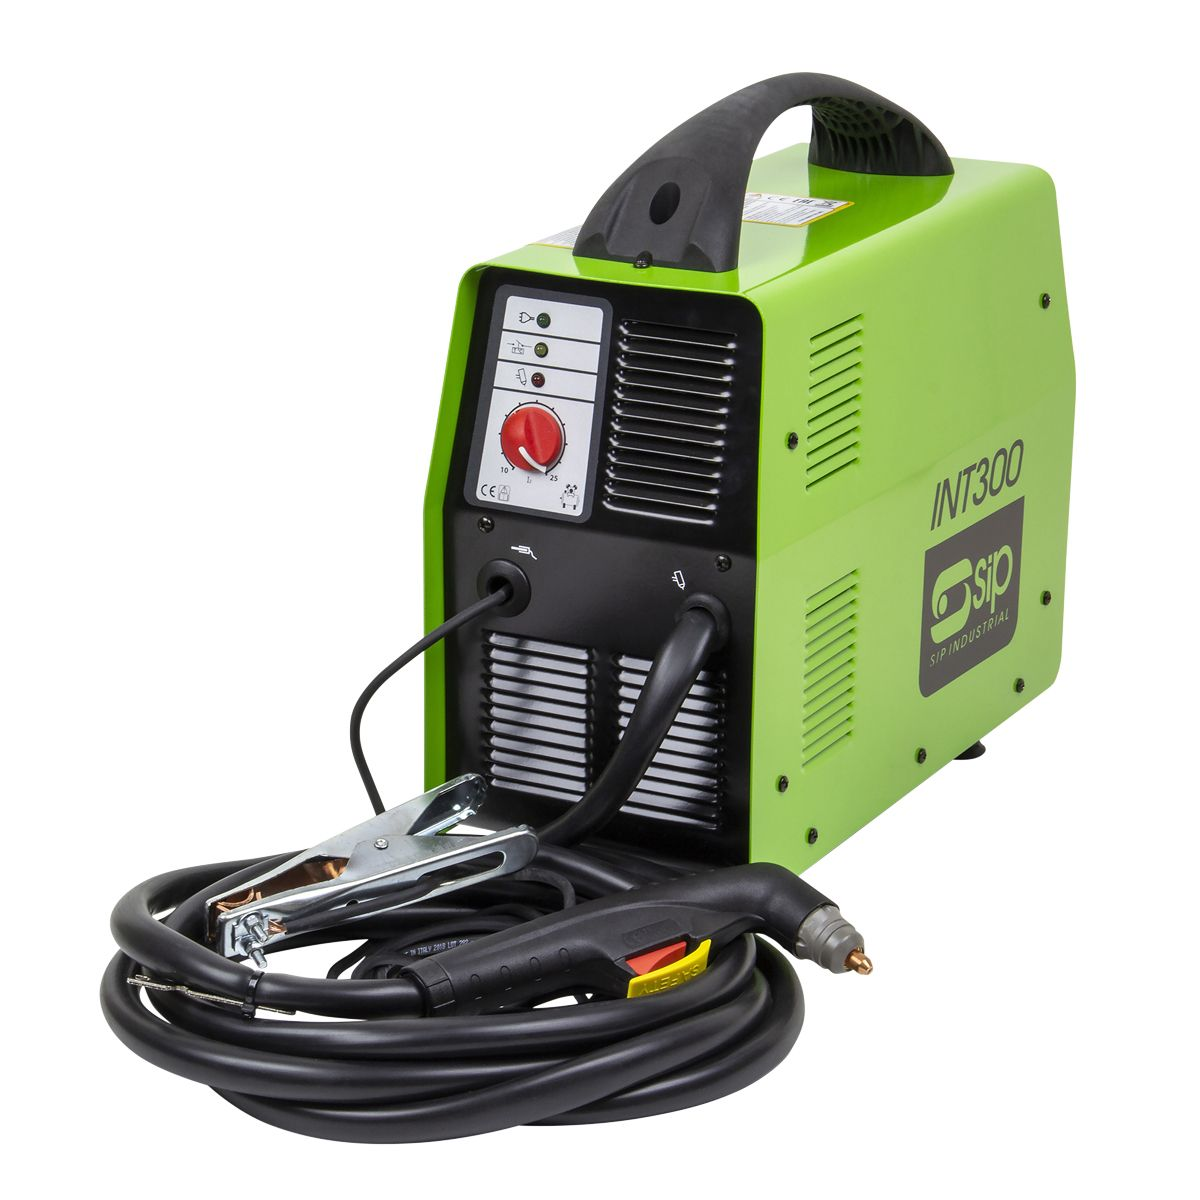 SIP INT300 25 Amp Plasma Cutter With Internal Compressor 230V